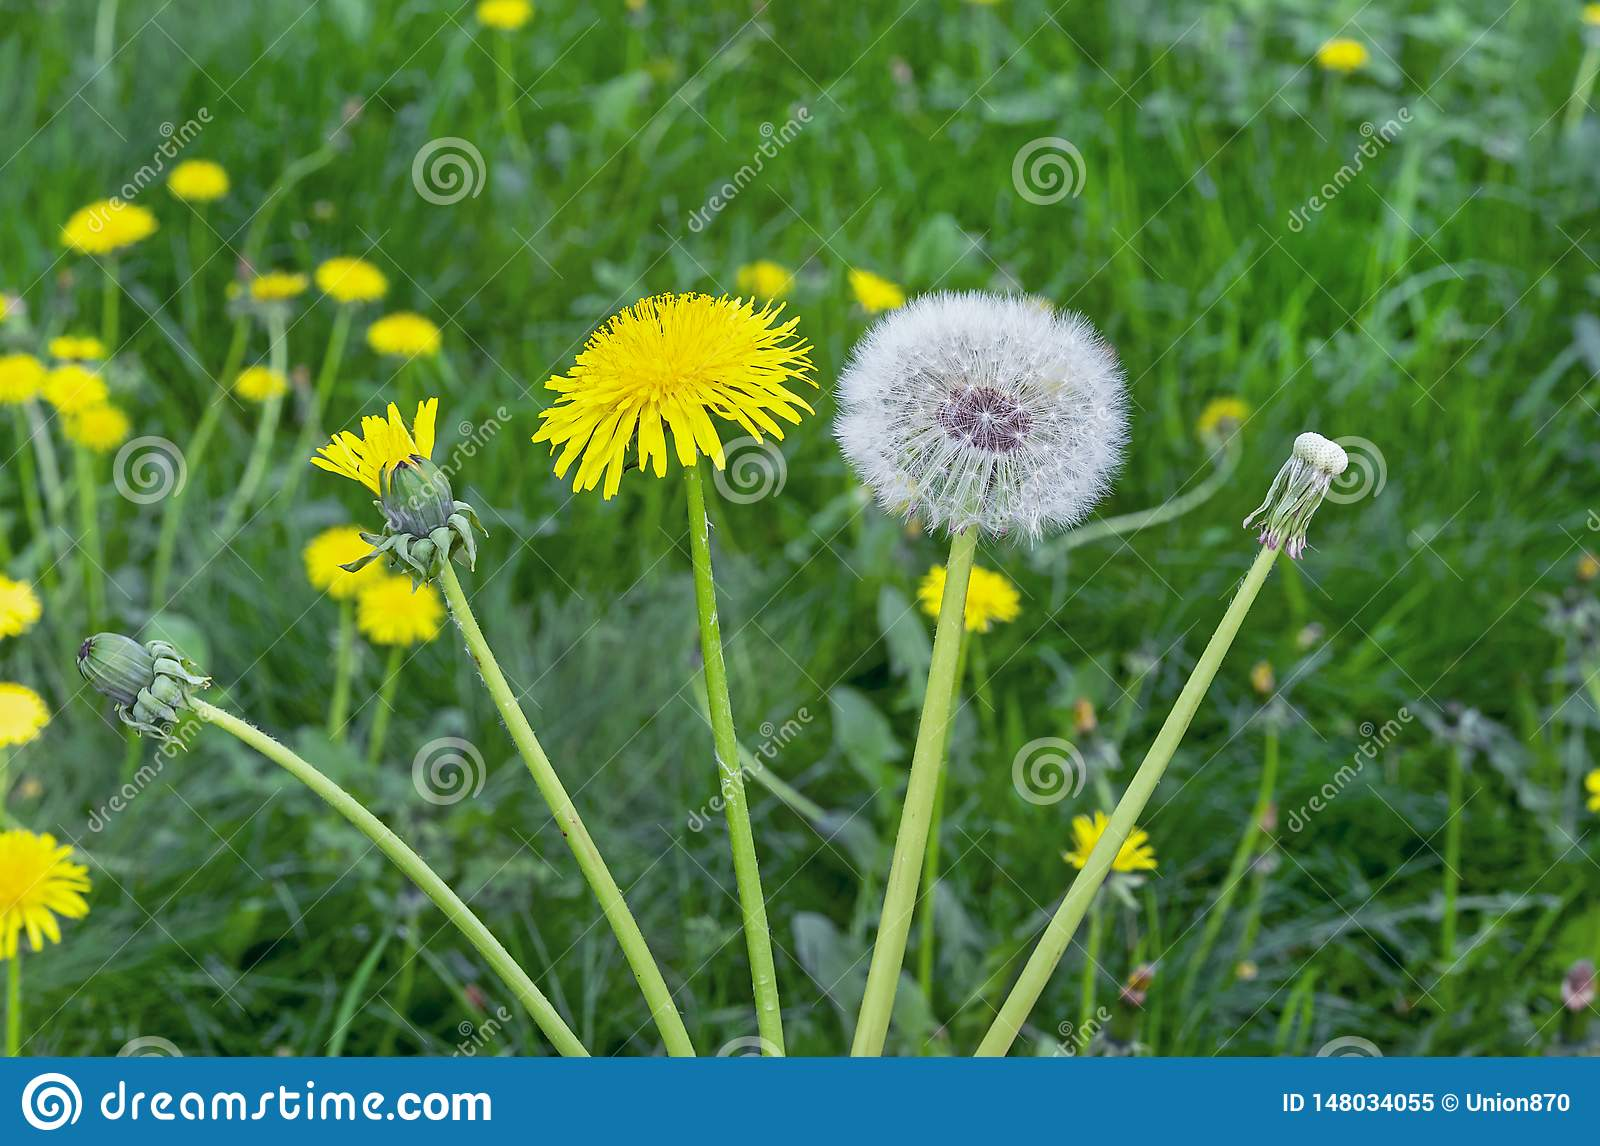 Dandelion Flower The Life Cycle Of A Dandelion Stages Of